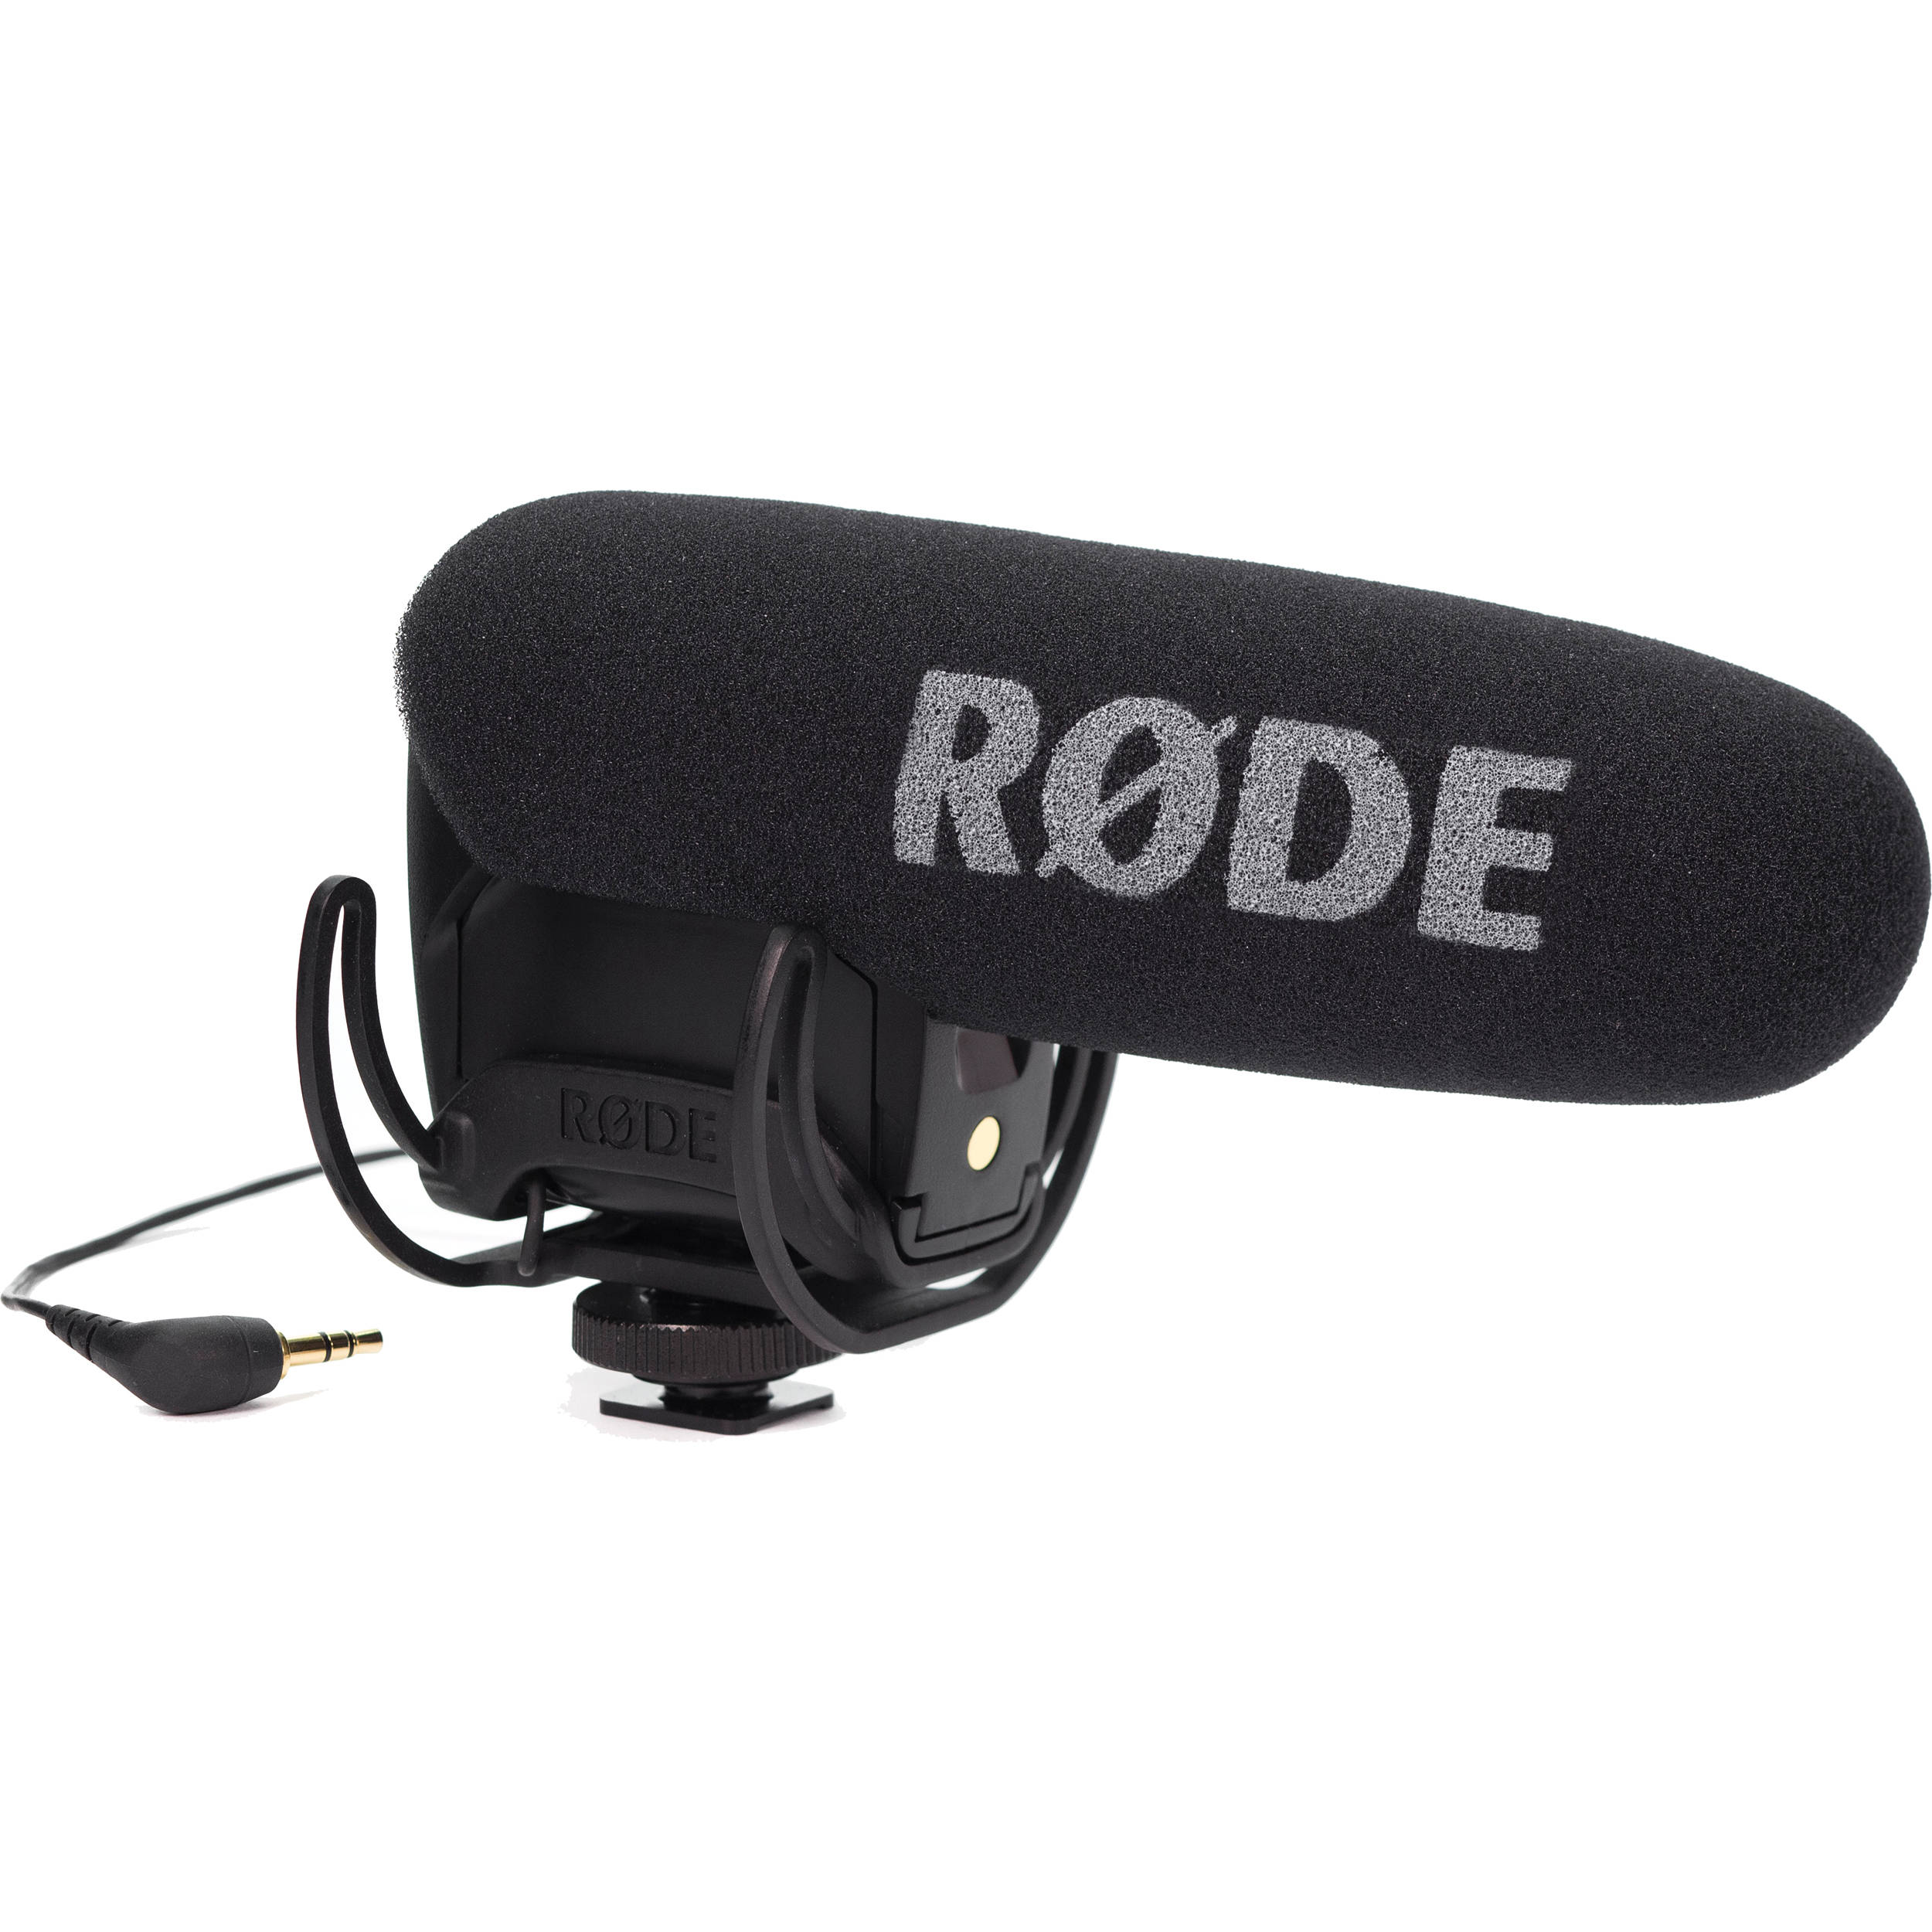 Better quality microphone